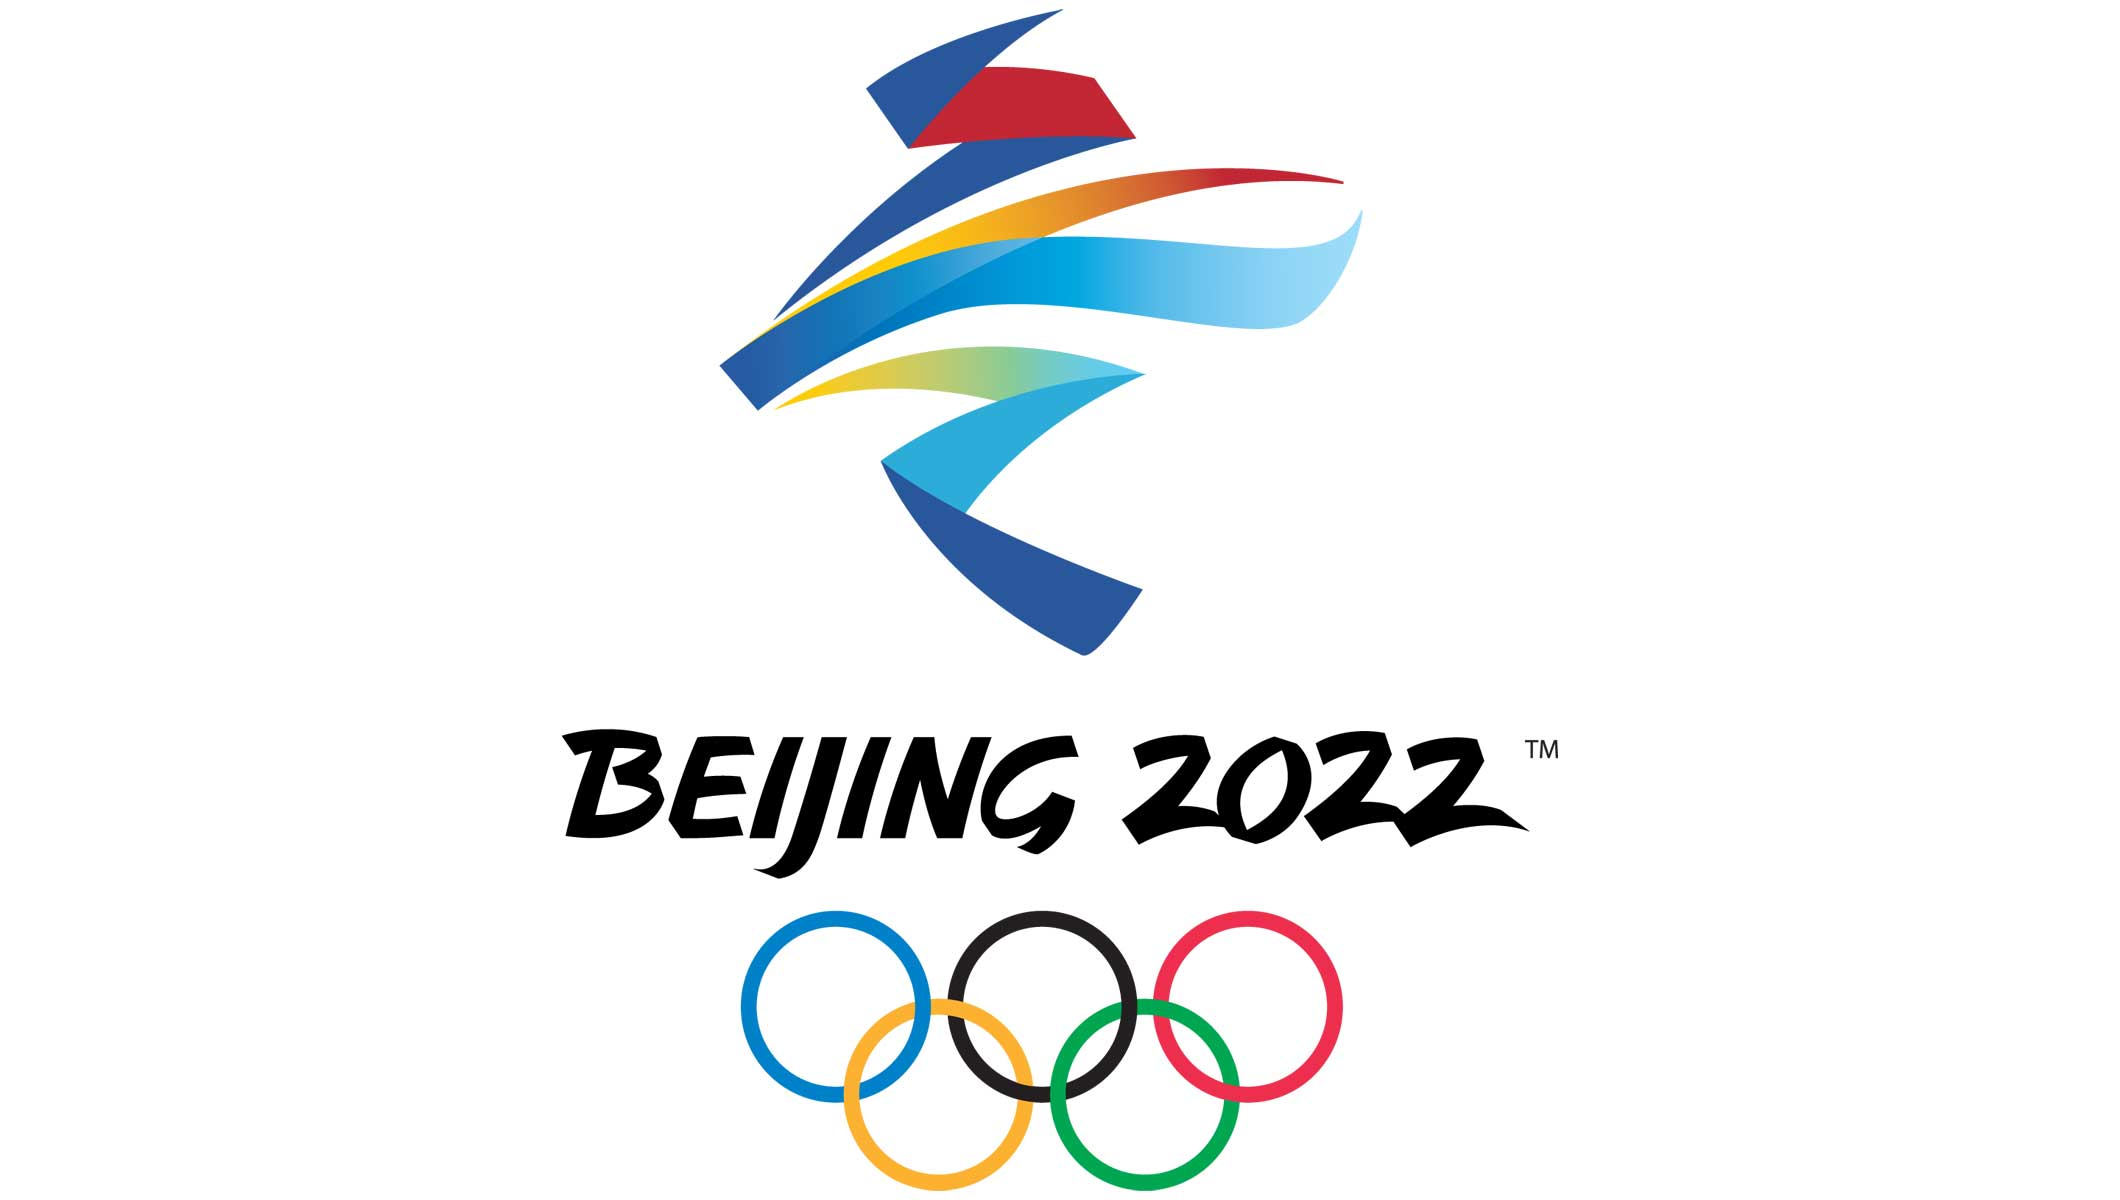 https://stillmed.olympic.org/media/Images/OlympicOrg/News/2017/12/15/2017-12-15-beijing-logo-thumbnail.jpg